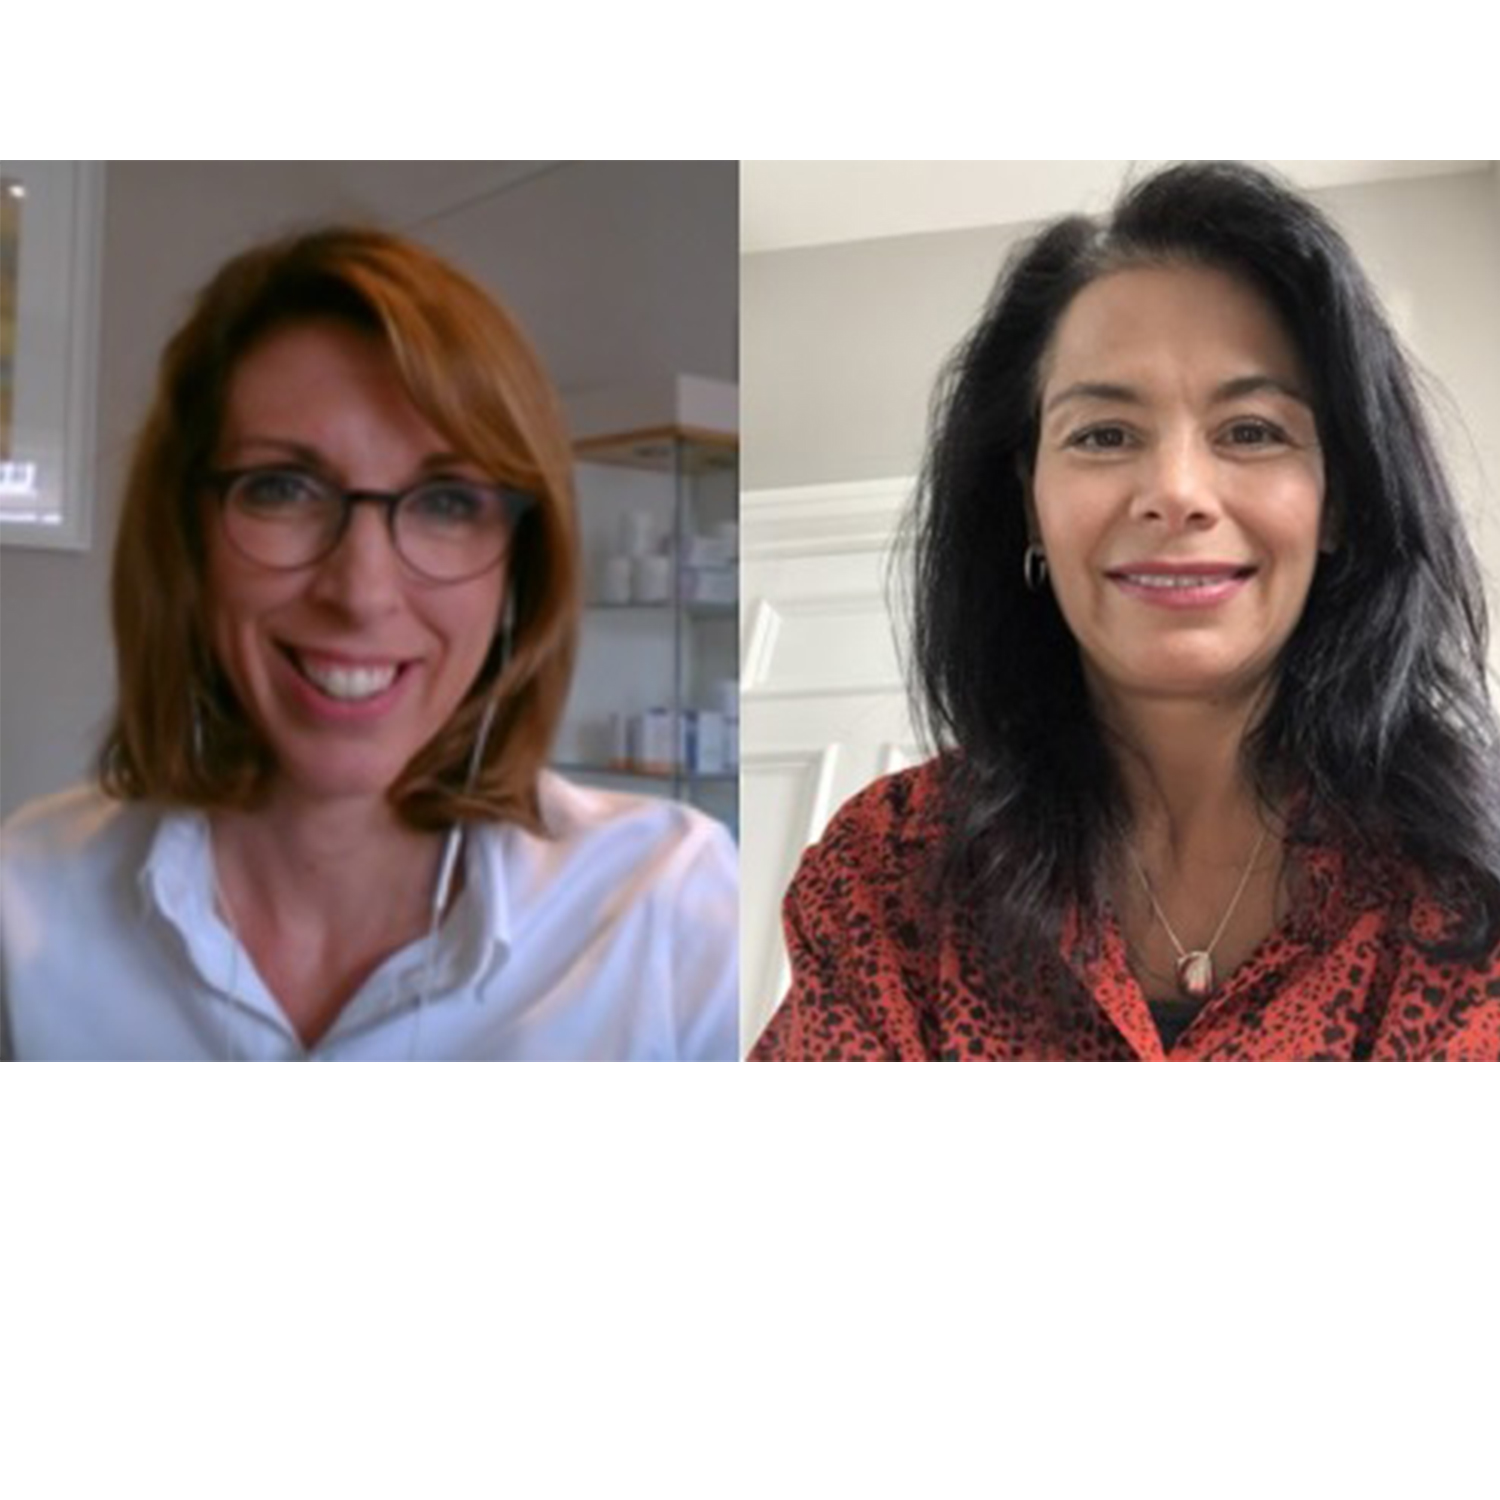 084 Menopause and Health - Dr Annice Mukherjee & Dr Louise Newson